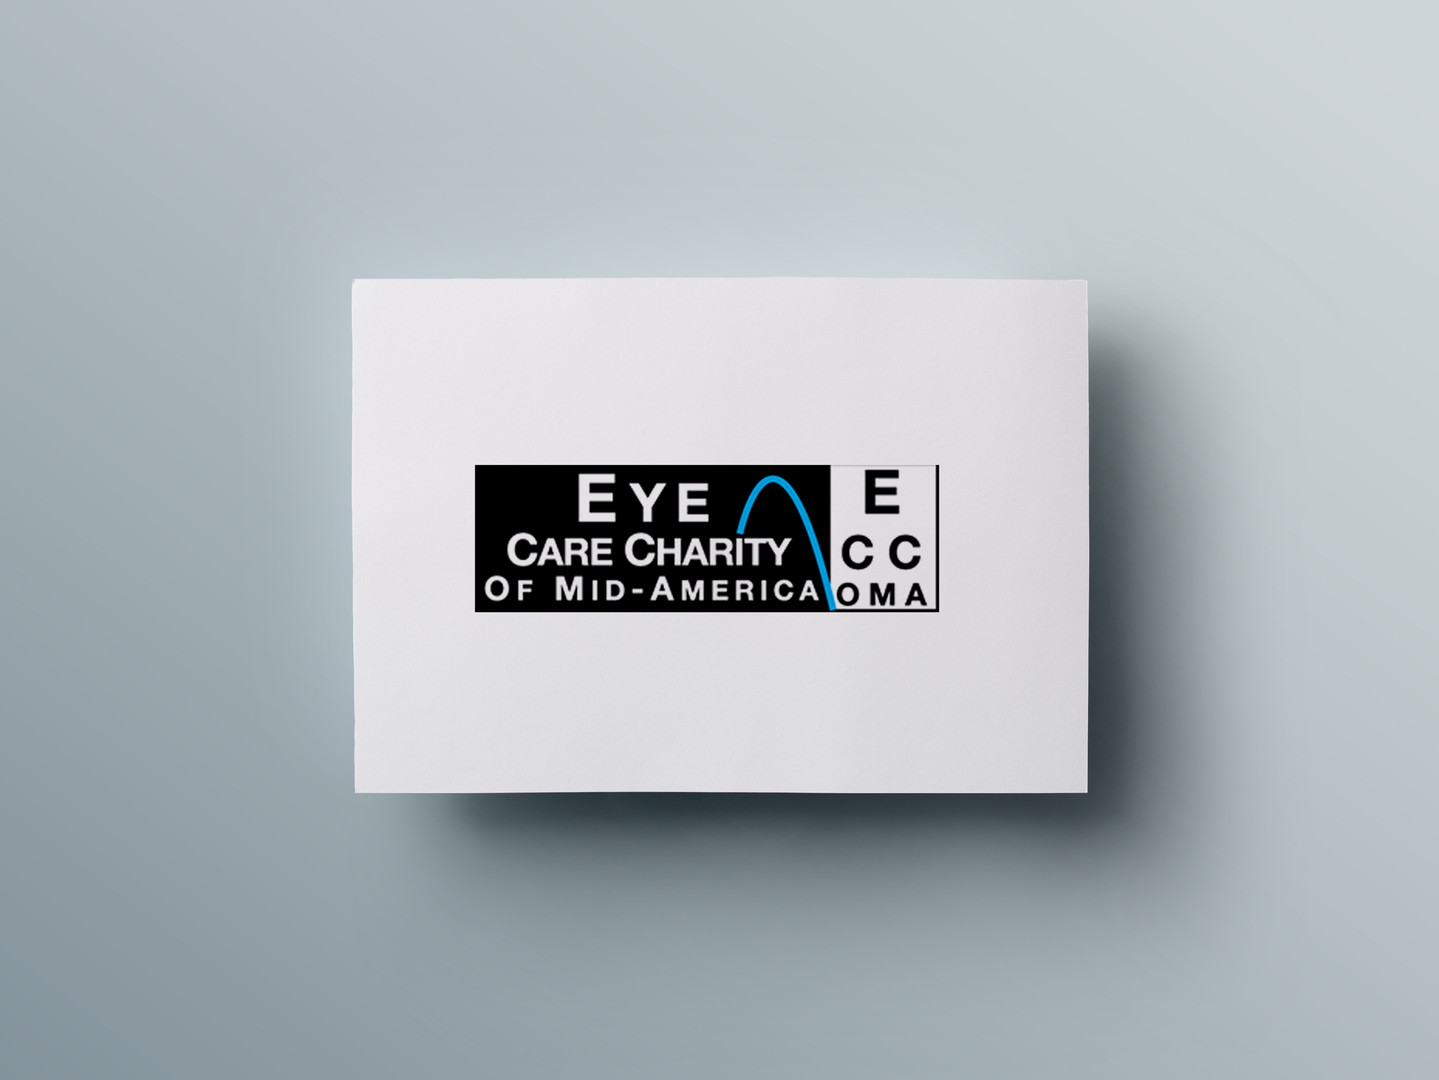 Before: Eye Care Charity of Mid-America